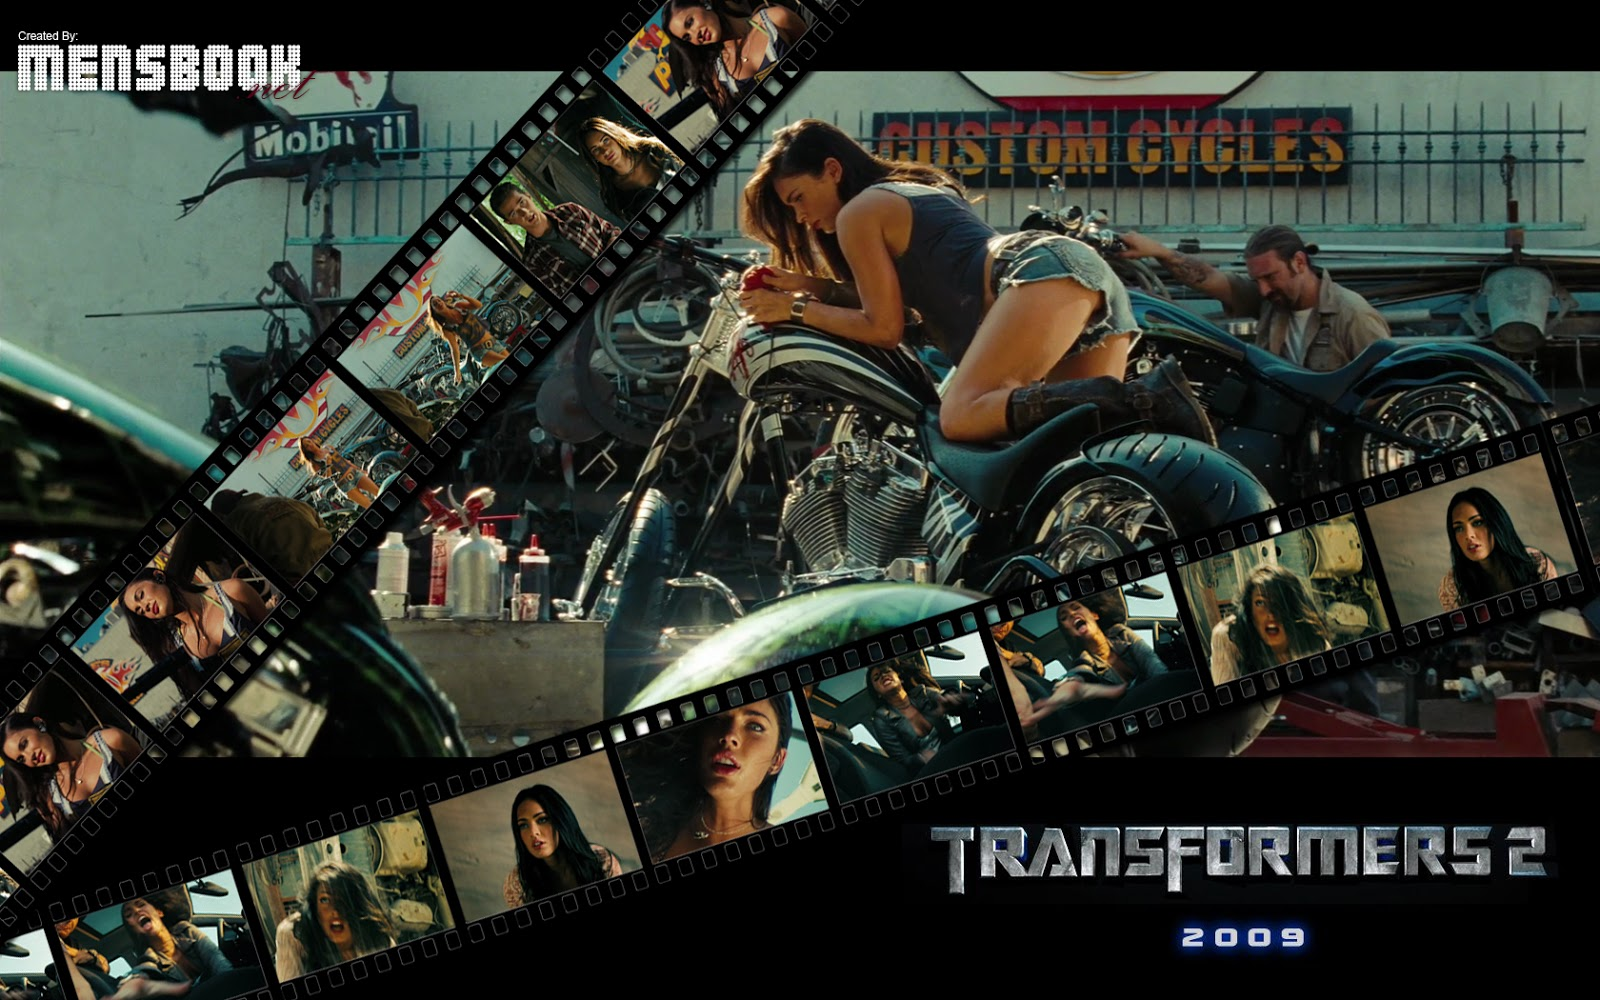 http://2.bp.blogspot.com/--iTJ4S8m5CU/TnmtCCD1piI/AAAAAAAAChg/89MIKYaaMJ8/s1600/megan_fox_crazy_on_bike-wide.jpg